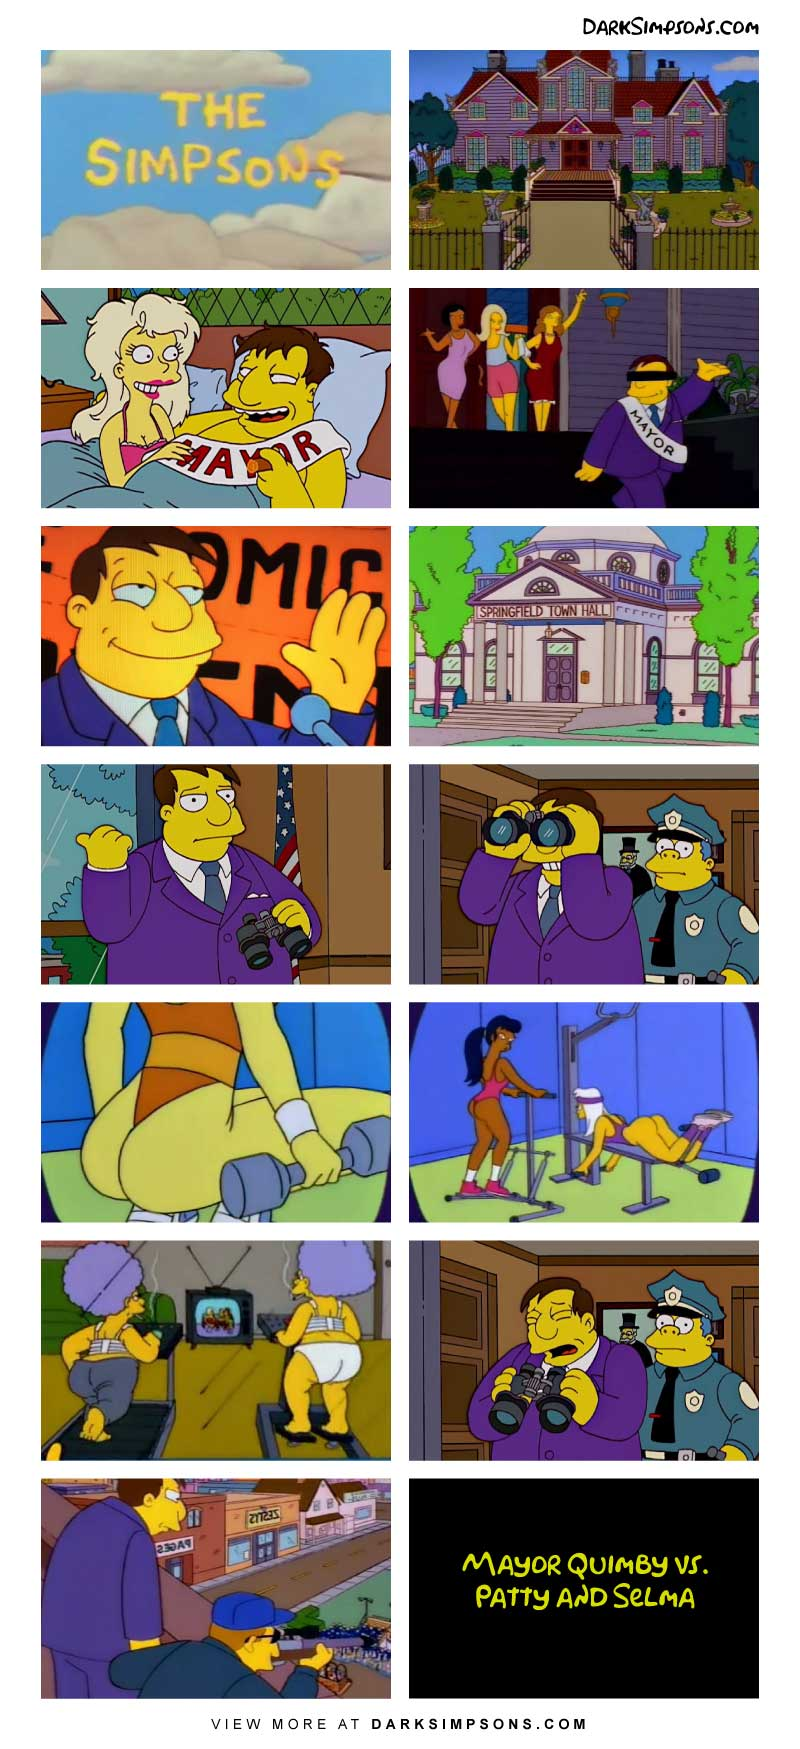 Mayor Quimby's hobbies include brothels and spying on women with his binoculars. But one day when something disrupts his spying, he takes it drastic action. Follow Mayor Quimby's adventure!